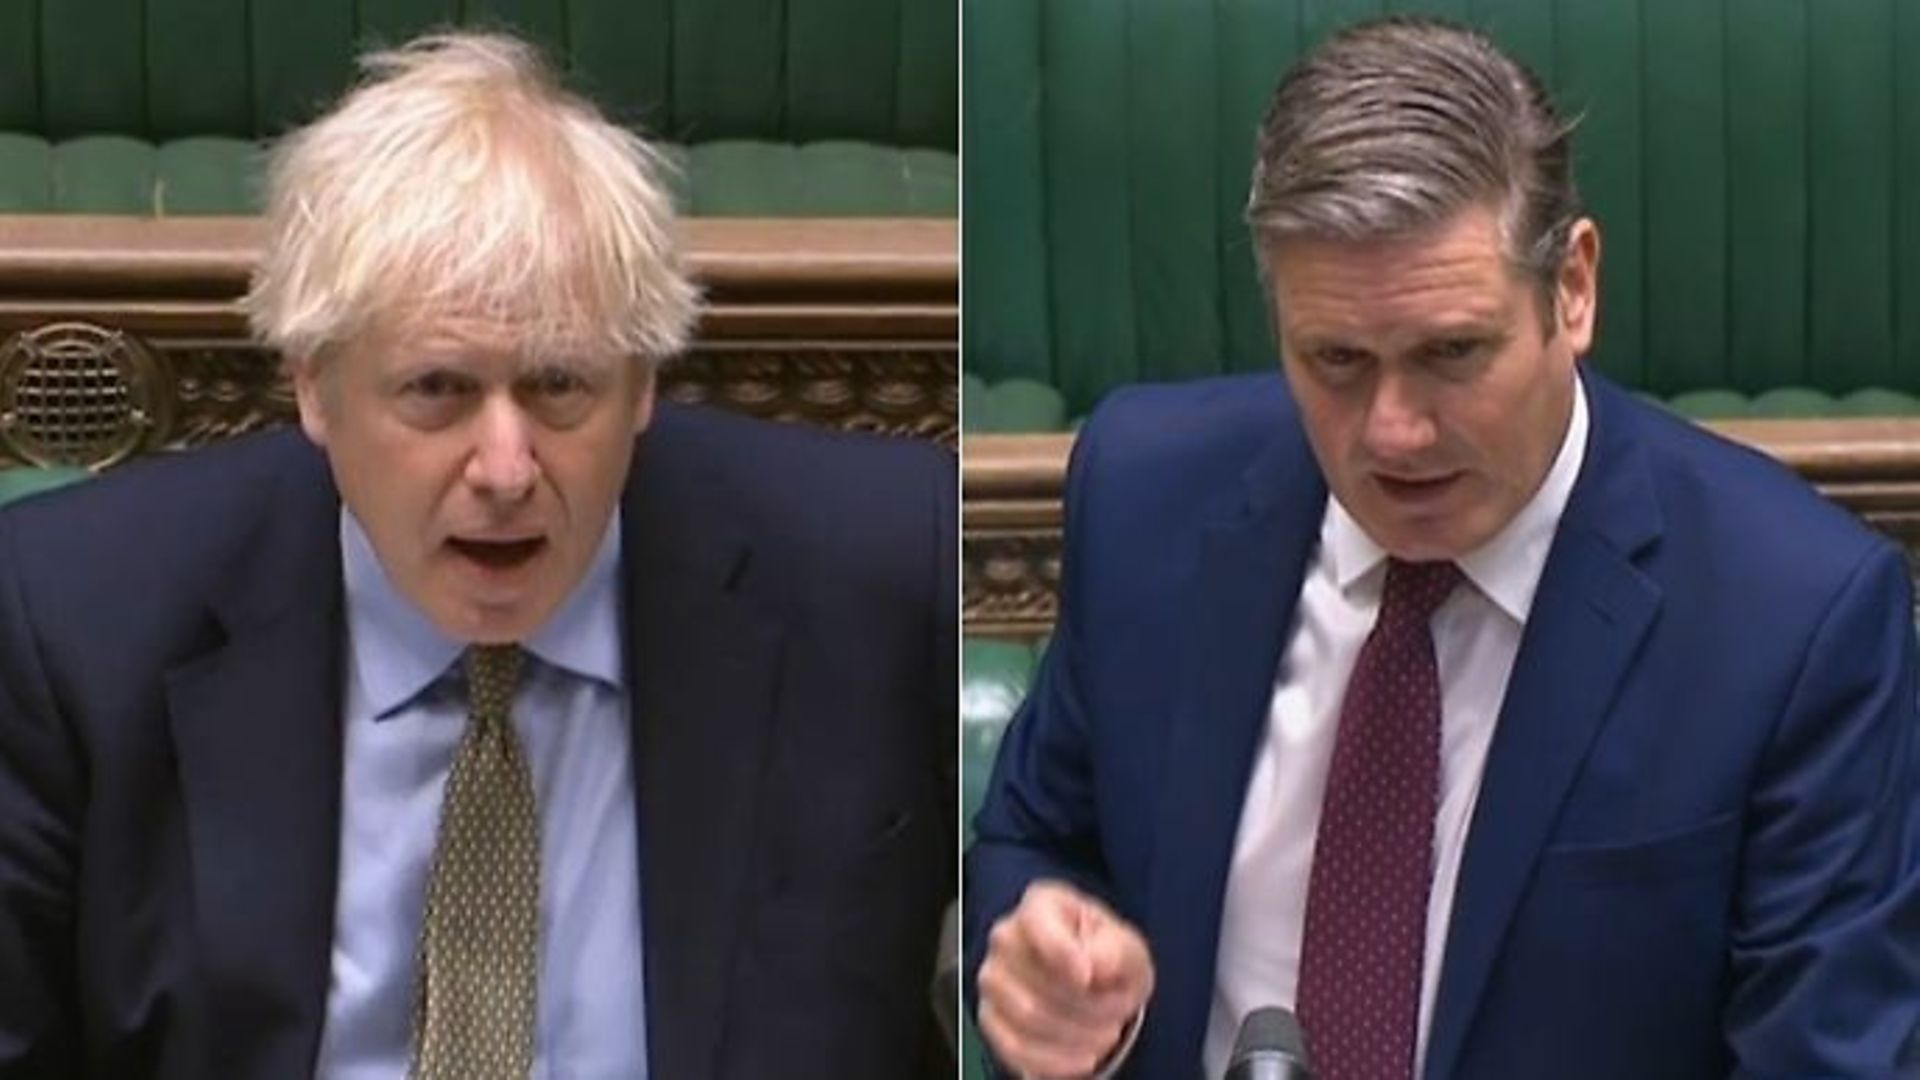 Boris Johnson (L) and opposition leader Sir Keir Starmer in the House of Commons - Credit: Parliamentlive.tv